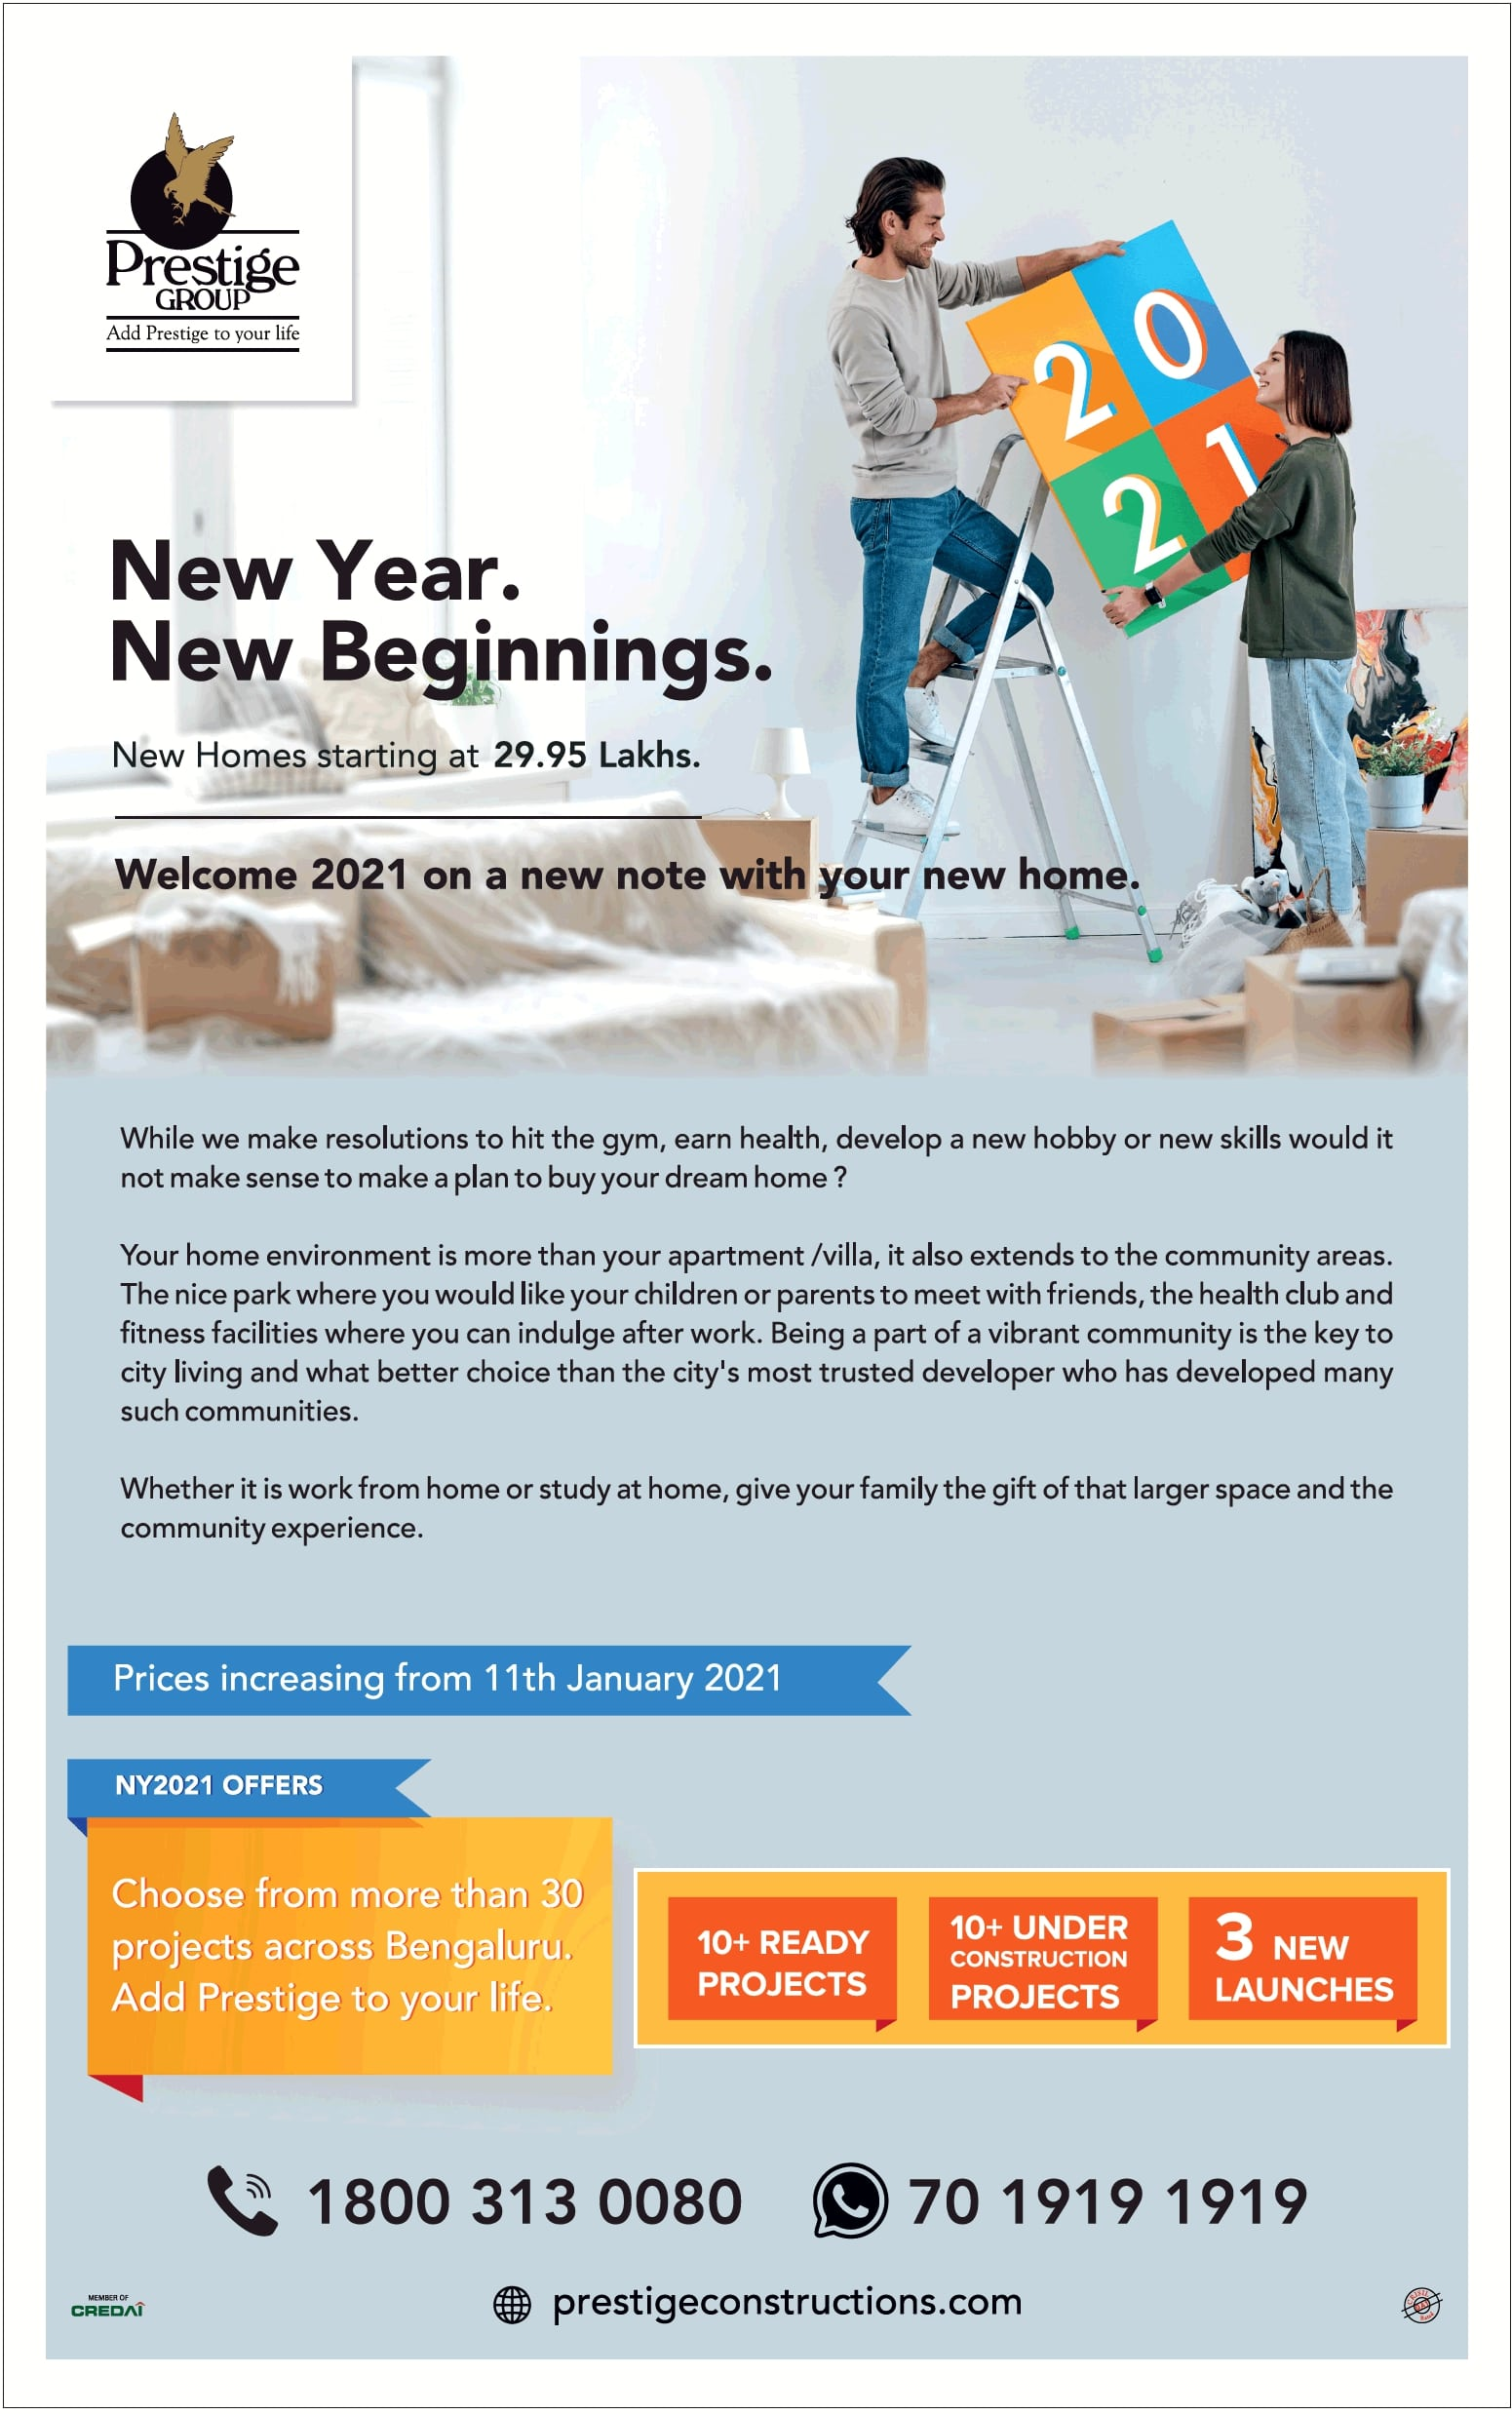 prestige-group-new-year-new-beginnings-ad-property-times-bangalore-08-01-2021